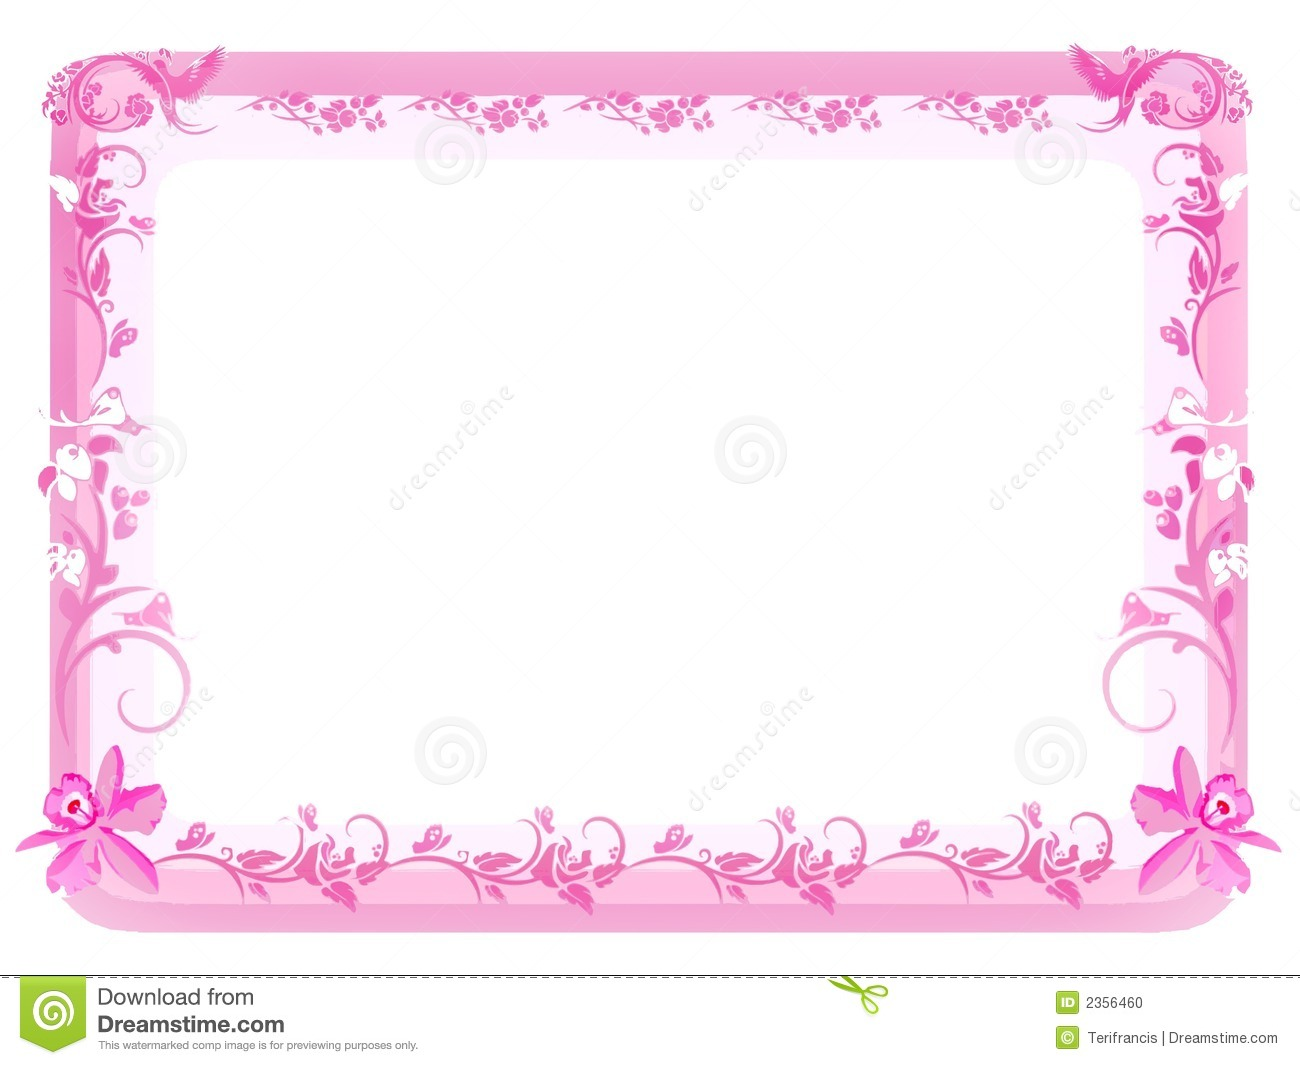 Vintage Floral Frame - Pink Stock Illustration - Illustration of ...